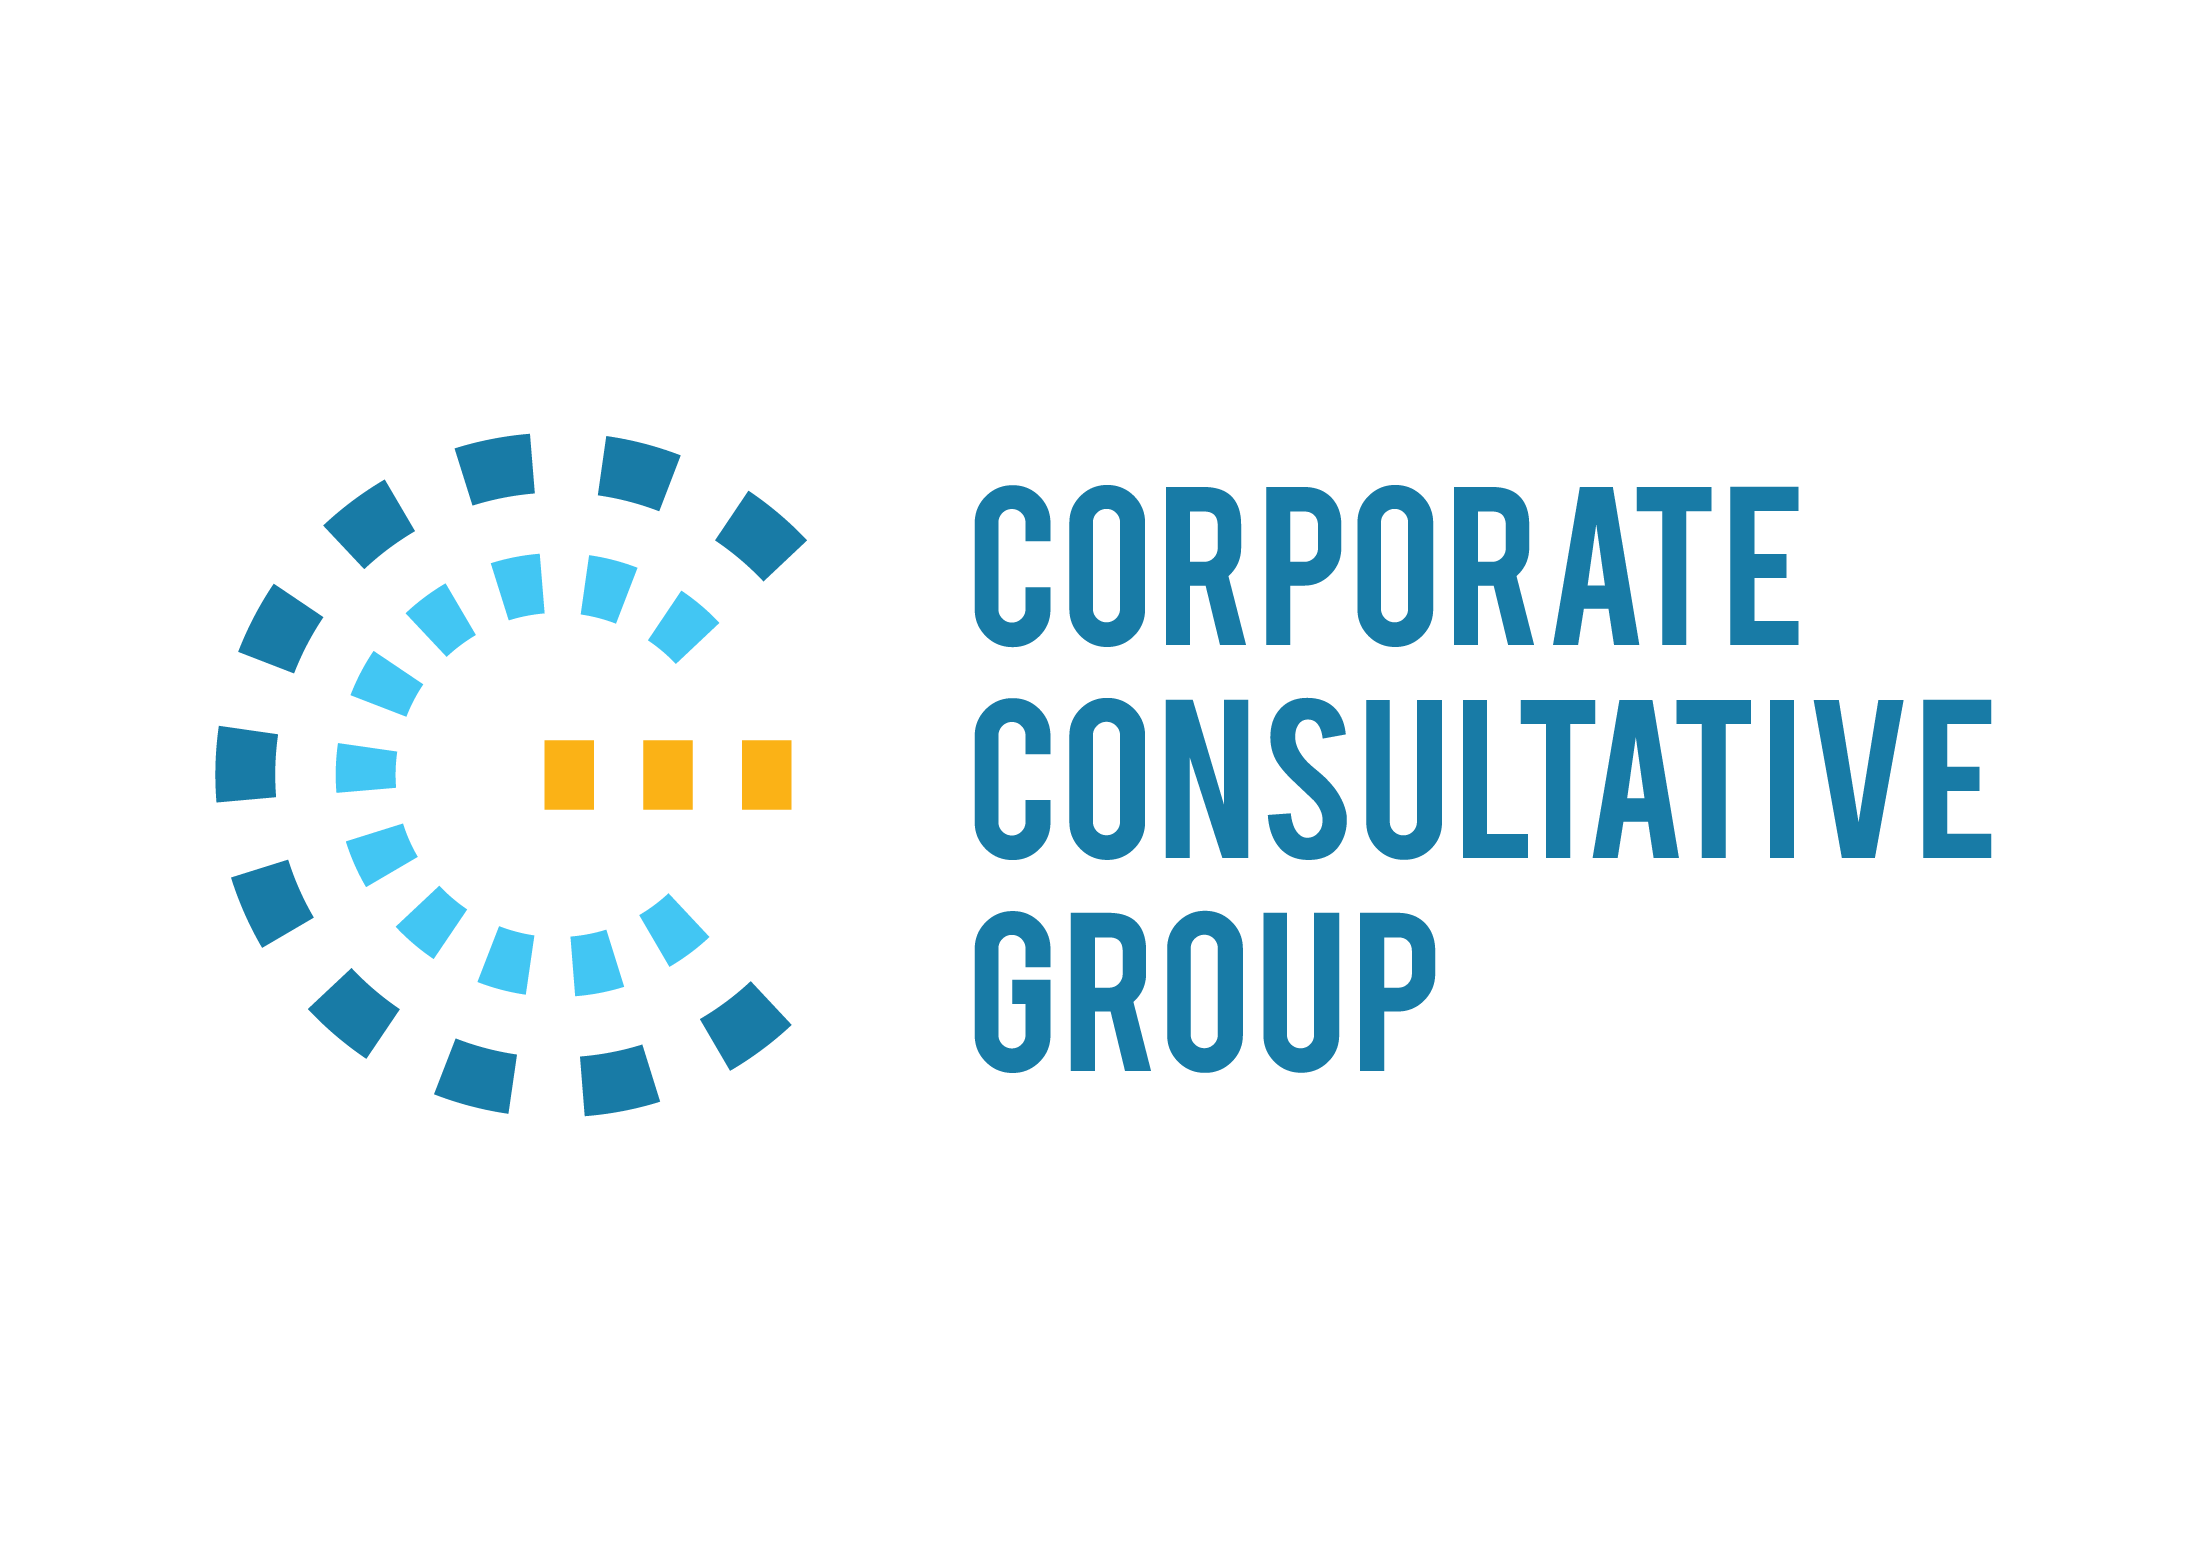 Corporate Consultative Group logo